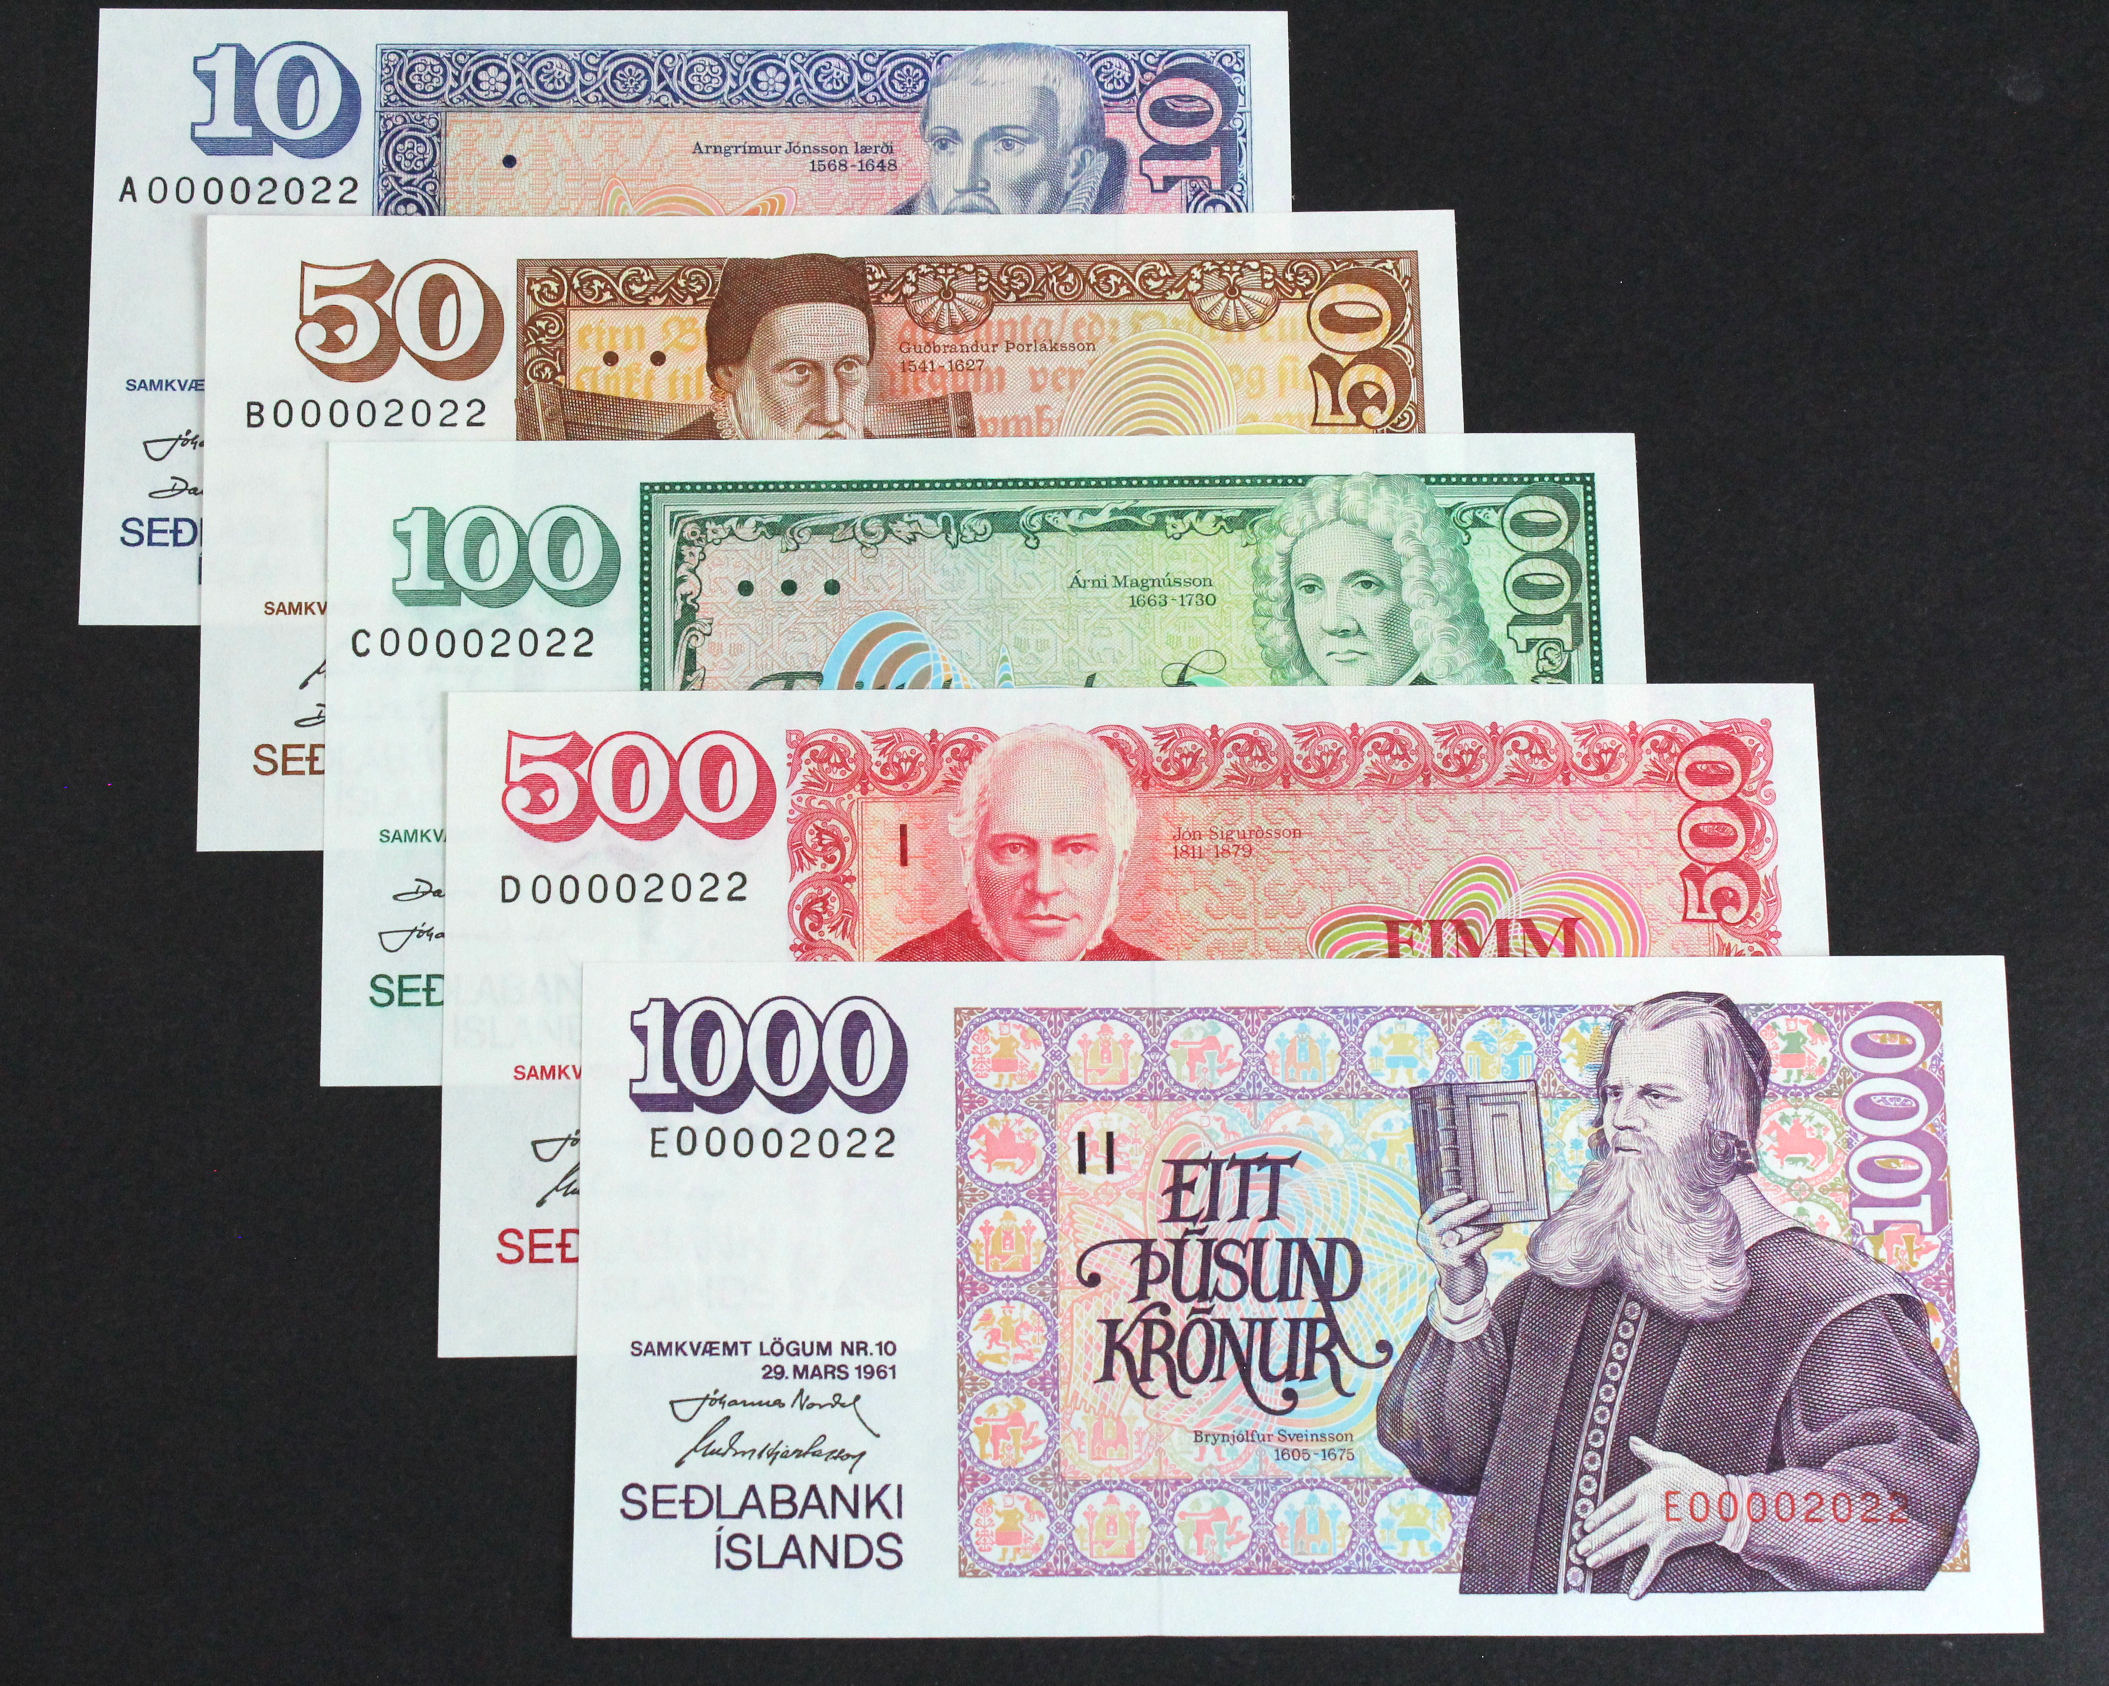 Iceland (5), 1000 Kronur, 500 Kronur, 100 Kronur, 50 Kronur and 10 Kronur, dated 29 March 1961